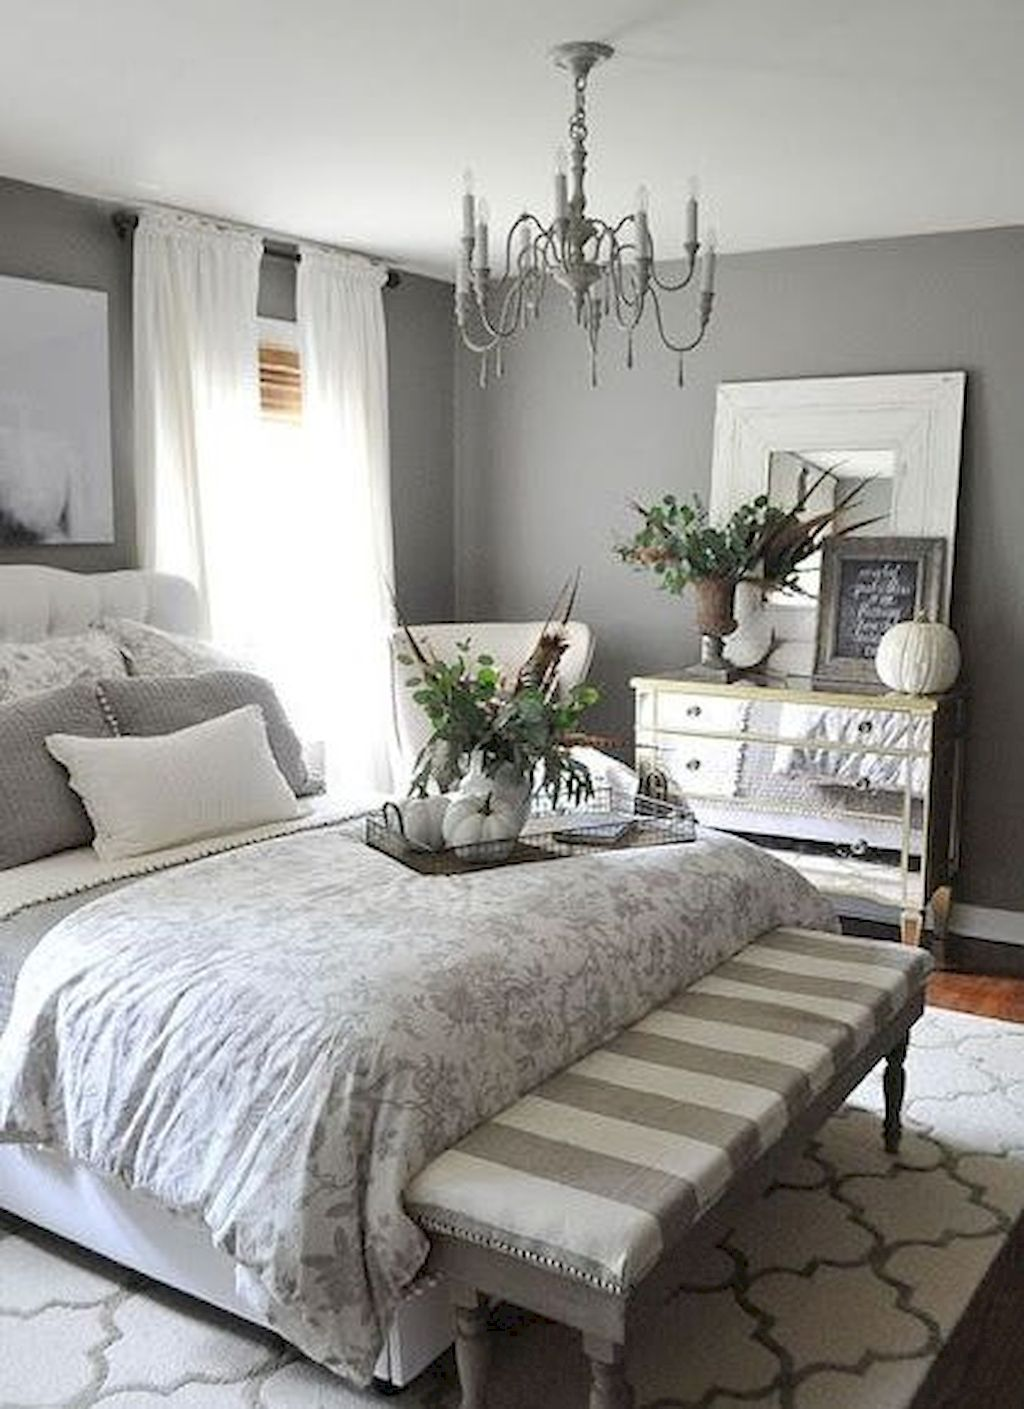 35 Farmhouse Master Bedroom Decorating Ideas Small